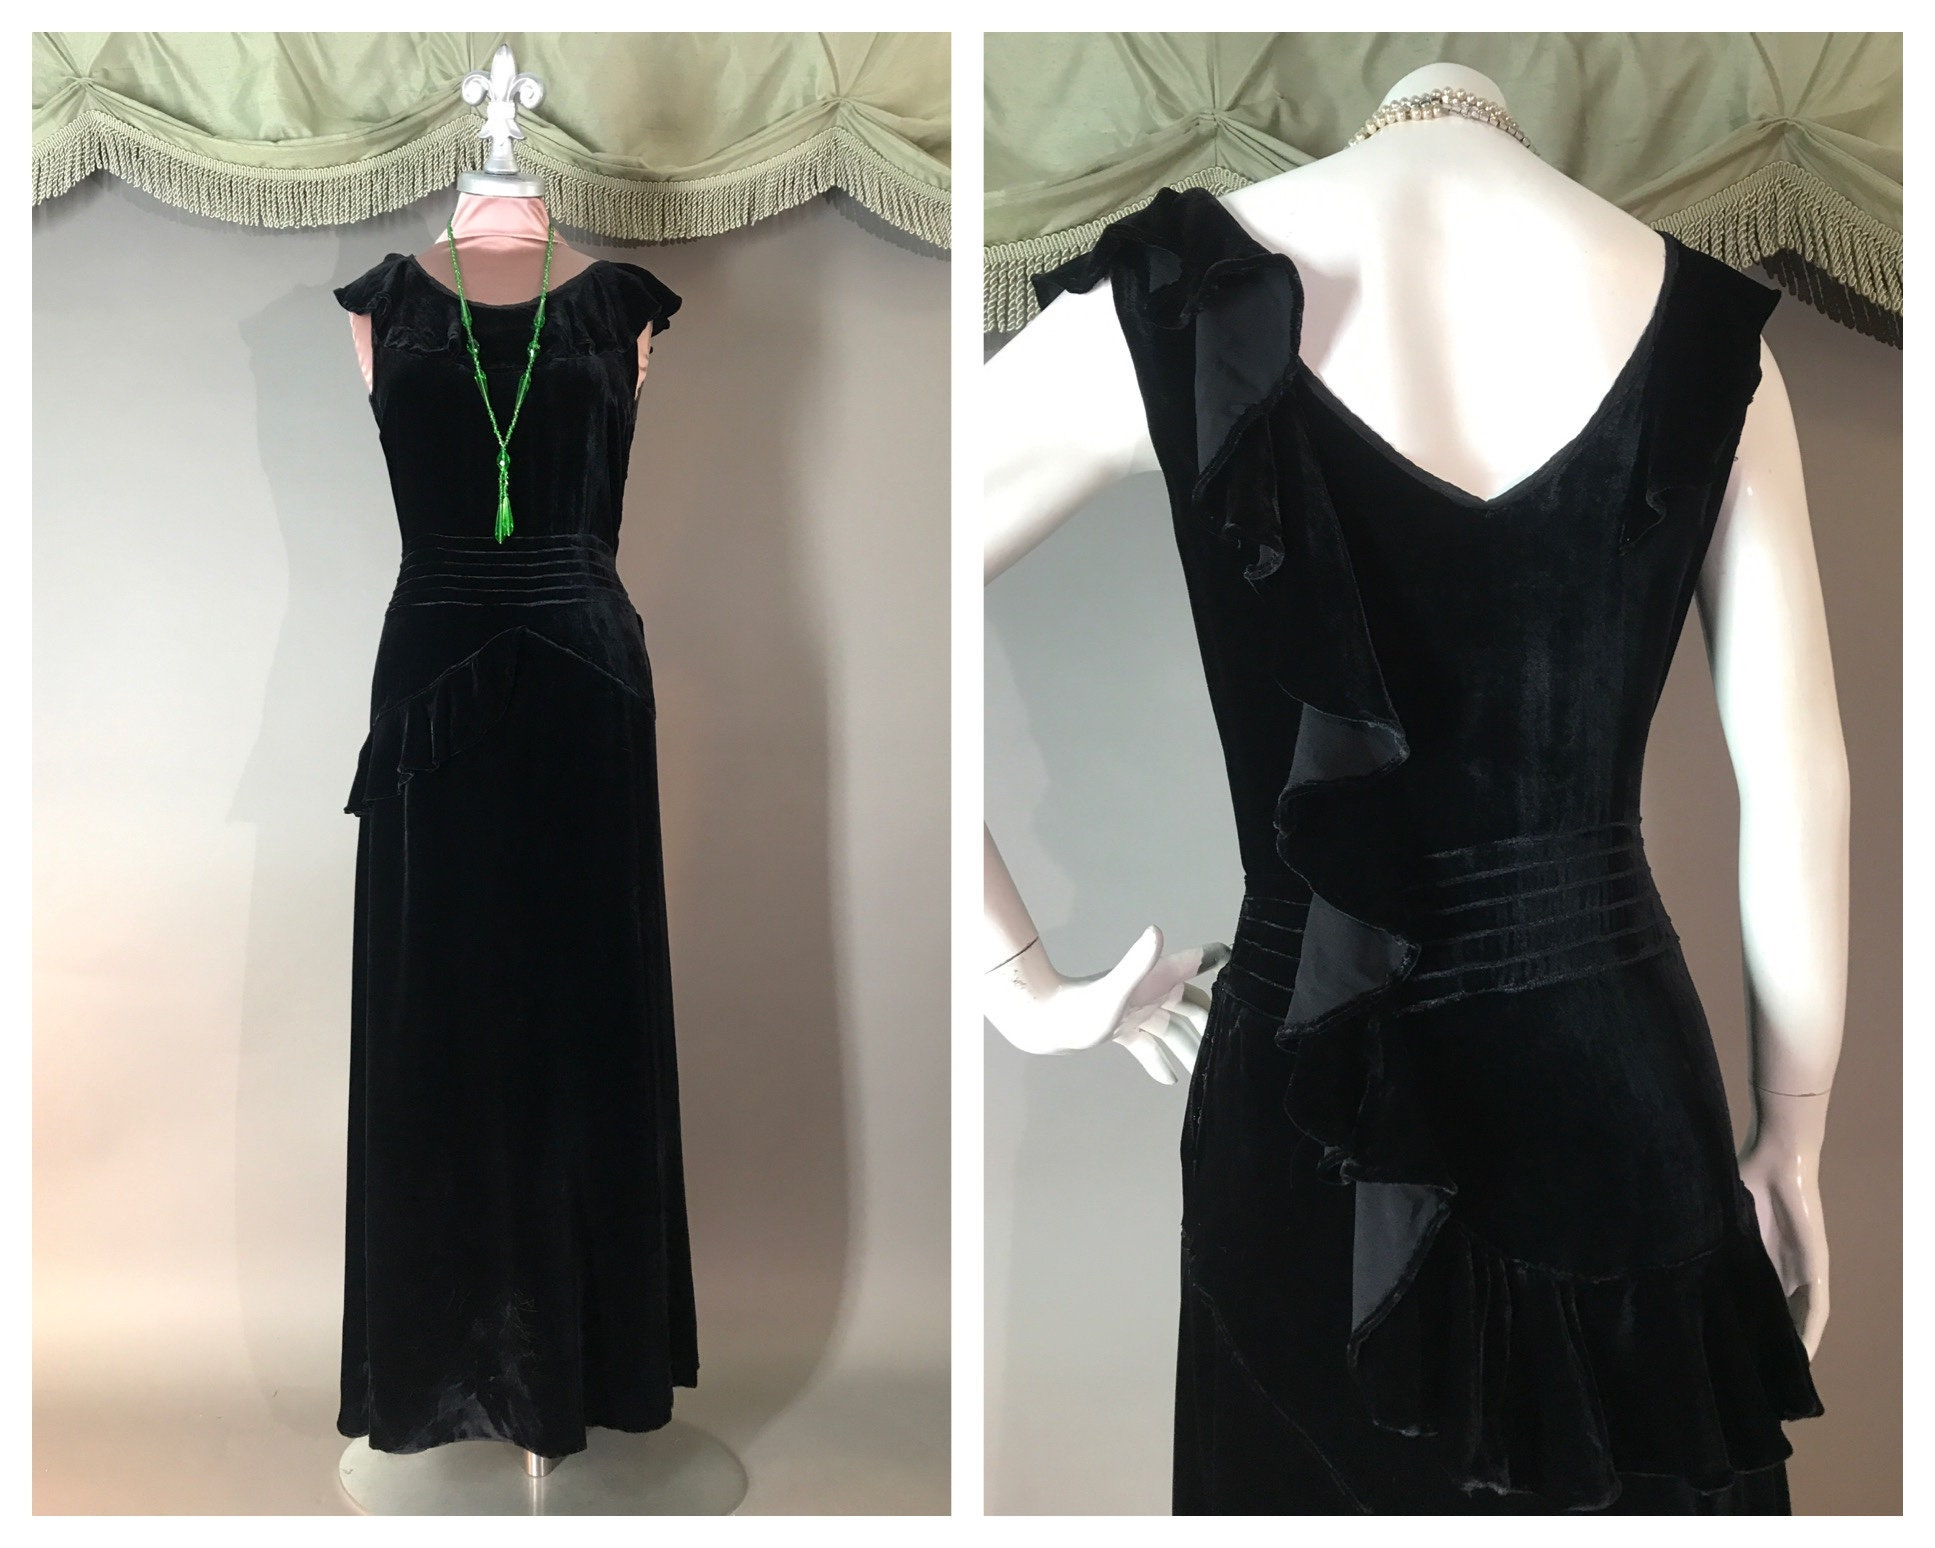 1930s Art Deco Style Jewelry 1930S Dress Vintage 30S Black Velvet Ruffle Curved Cascade Detailed $23.00 AT vintagedancer.com